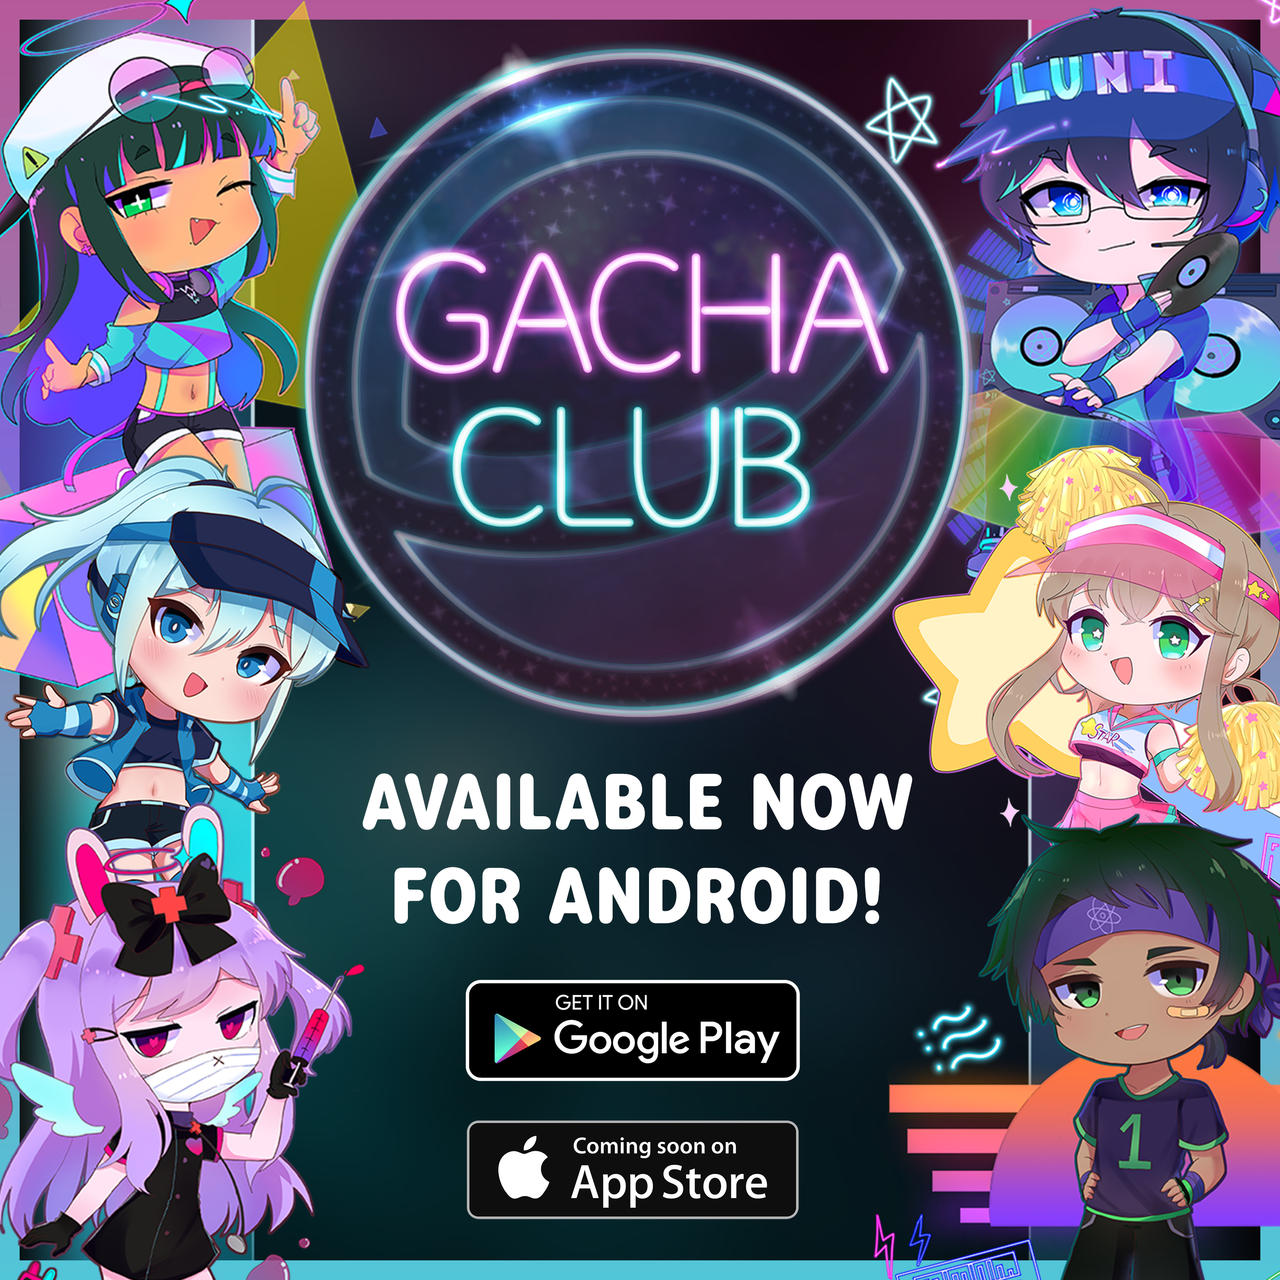 Gacha Club Available Now!